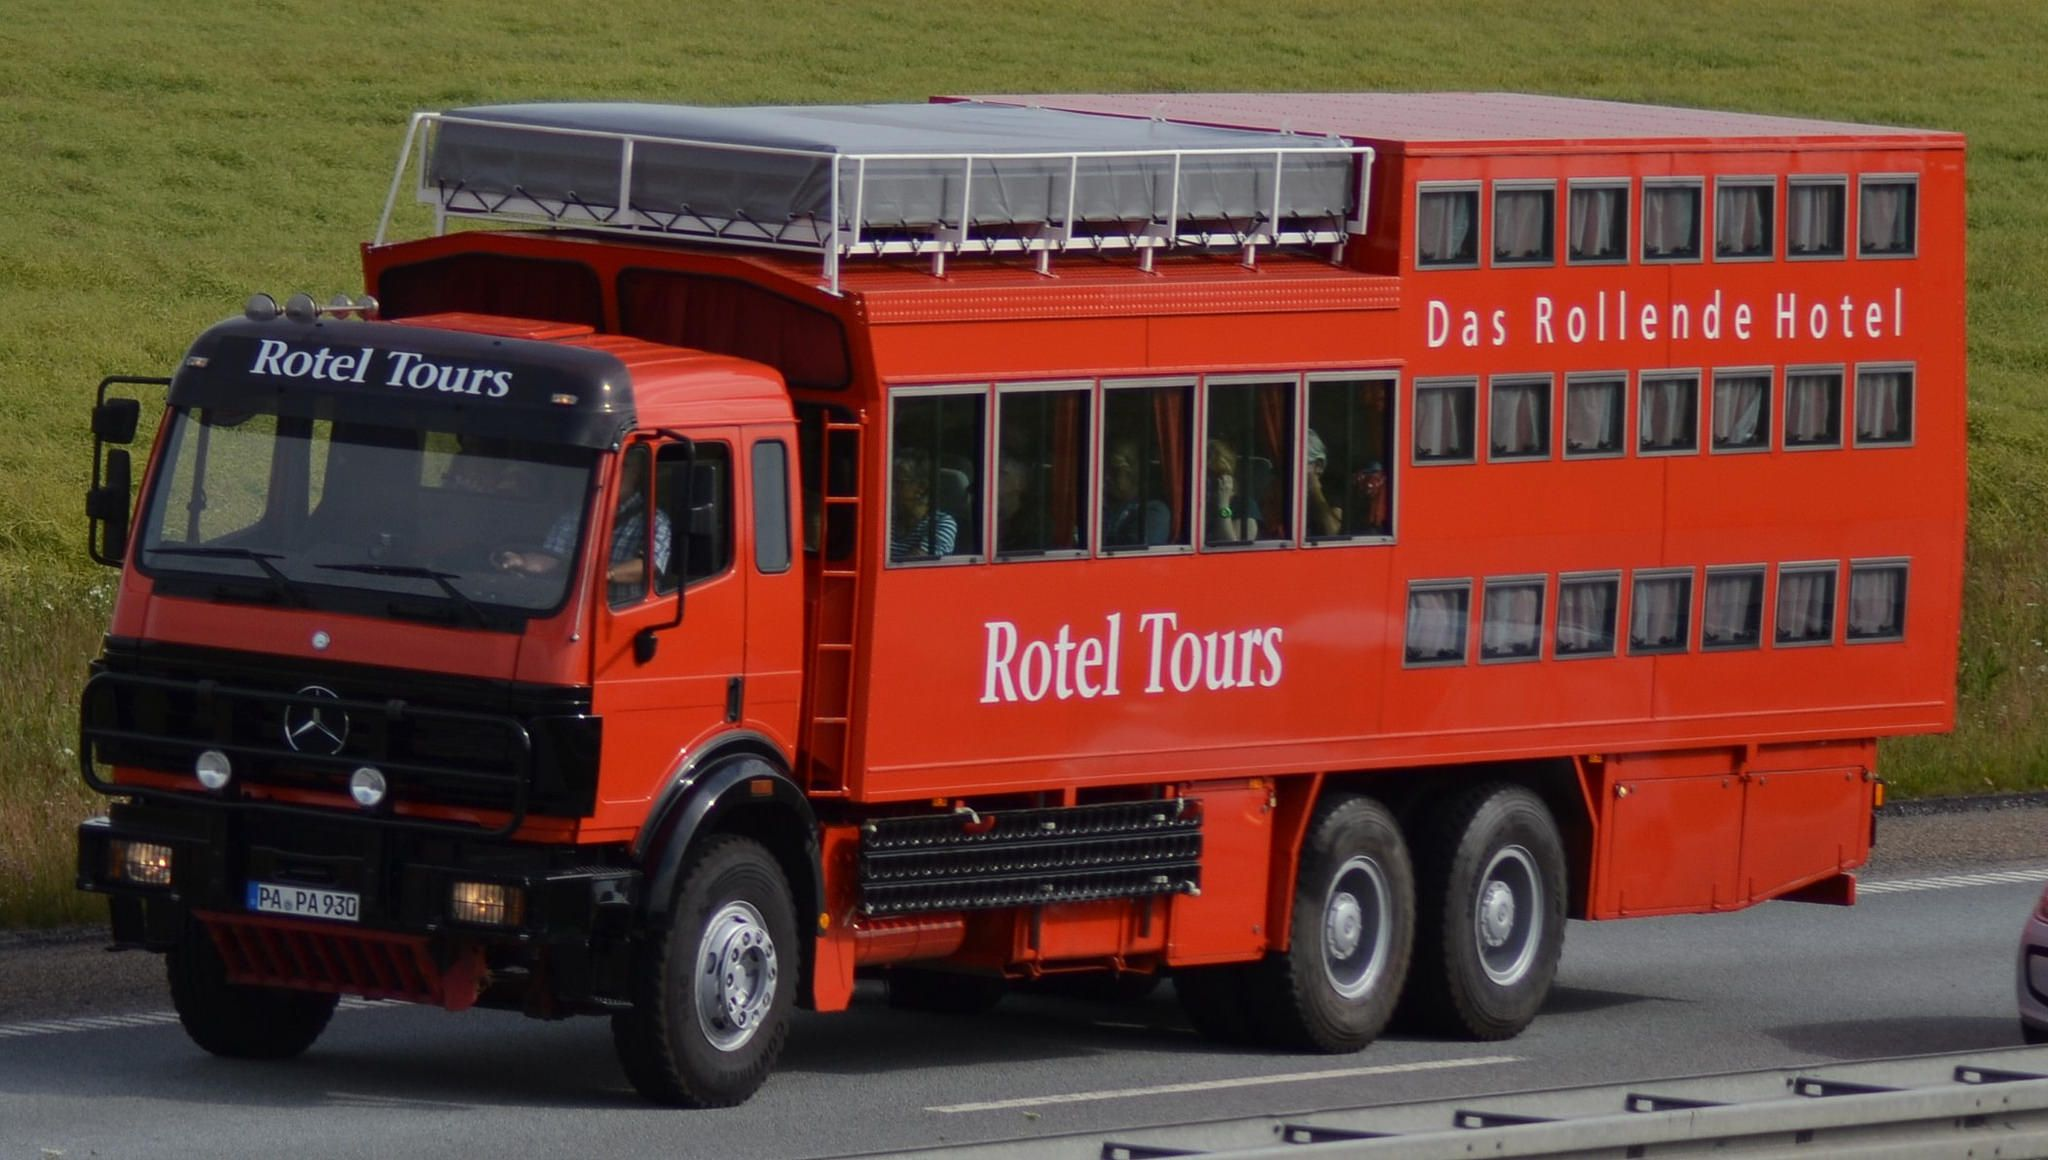 Mercedes Sk - Rotel Tours Das Rollende Hotel - D PA PA 930